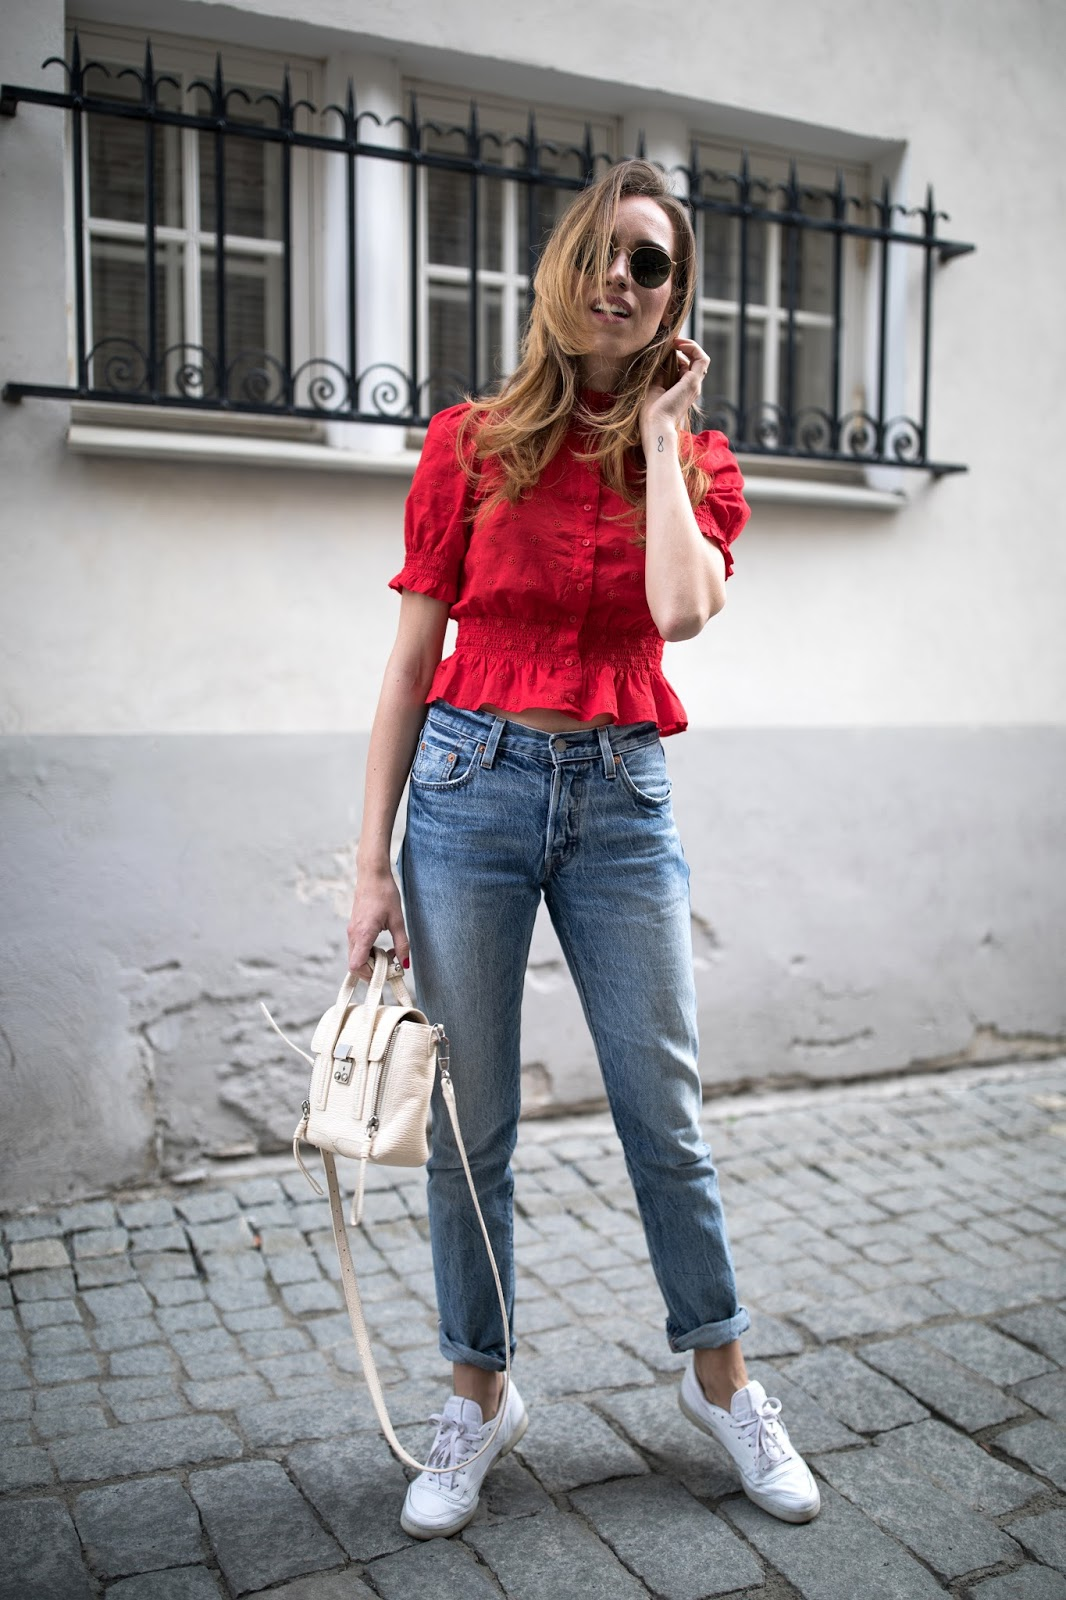 kristjaana-mom-jeans-summer-outfit